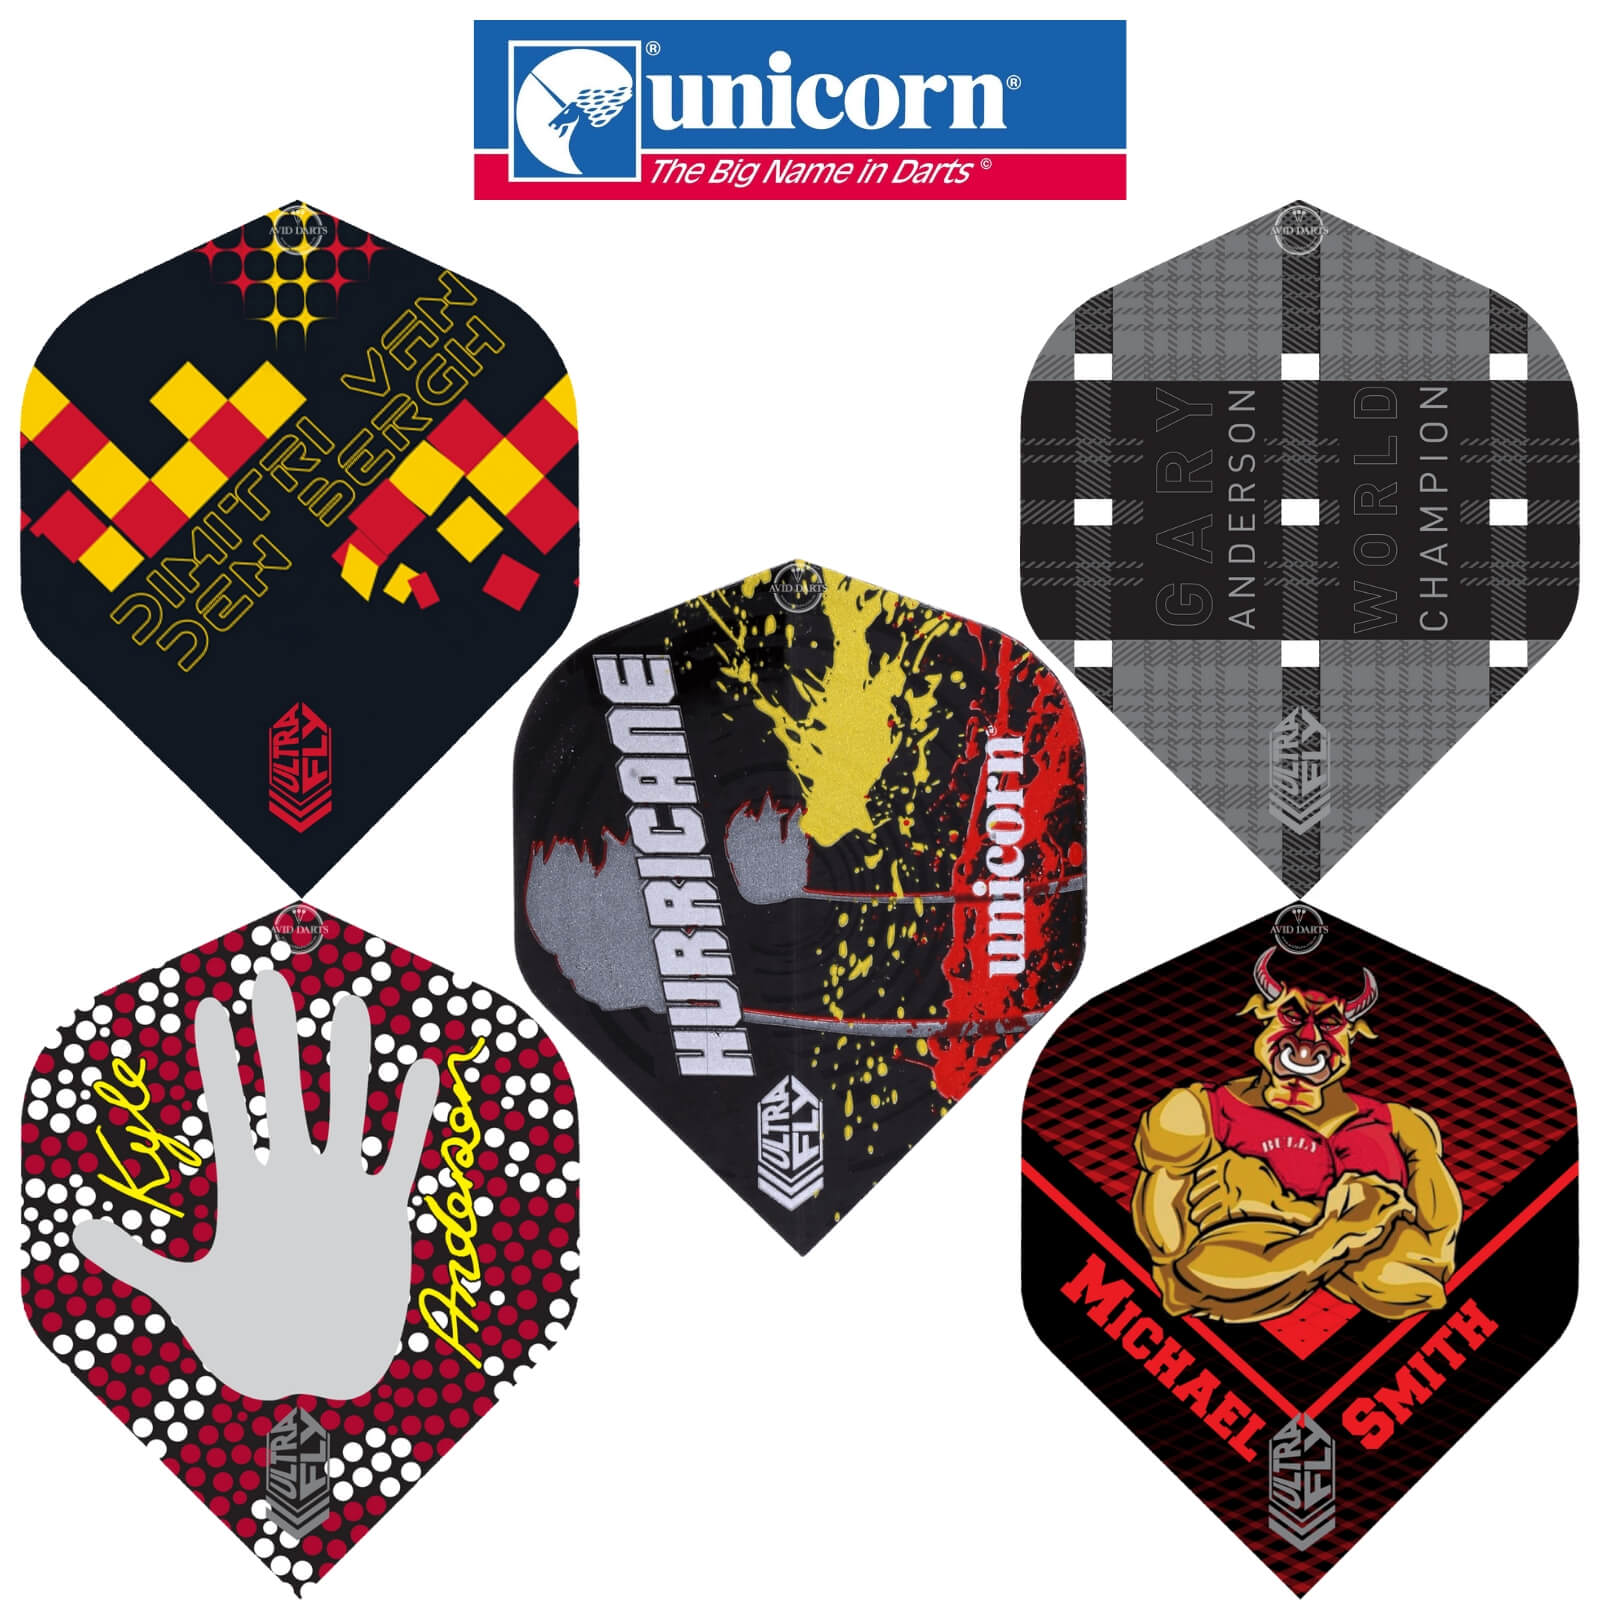 Dart Flights - Unicorn - Ultrafly Pro Player - Big Wing Dart Flights